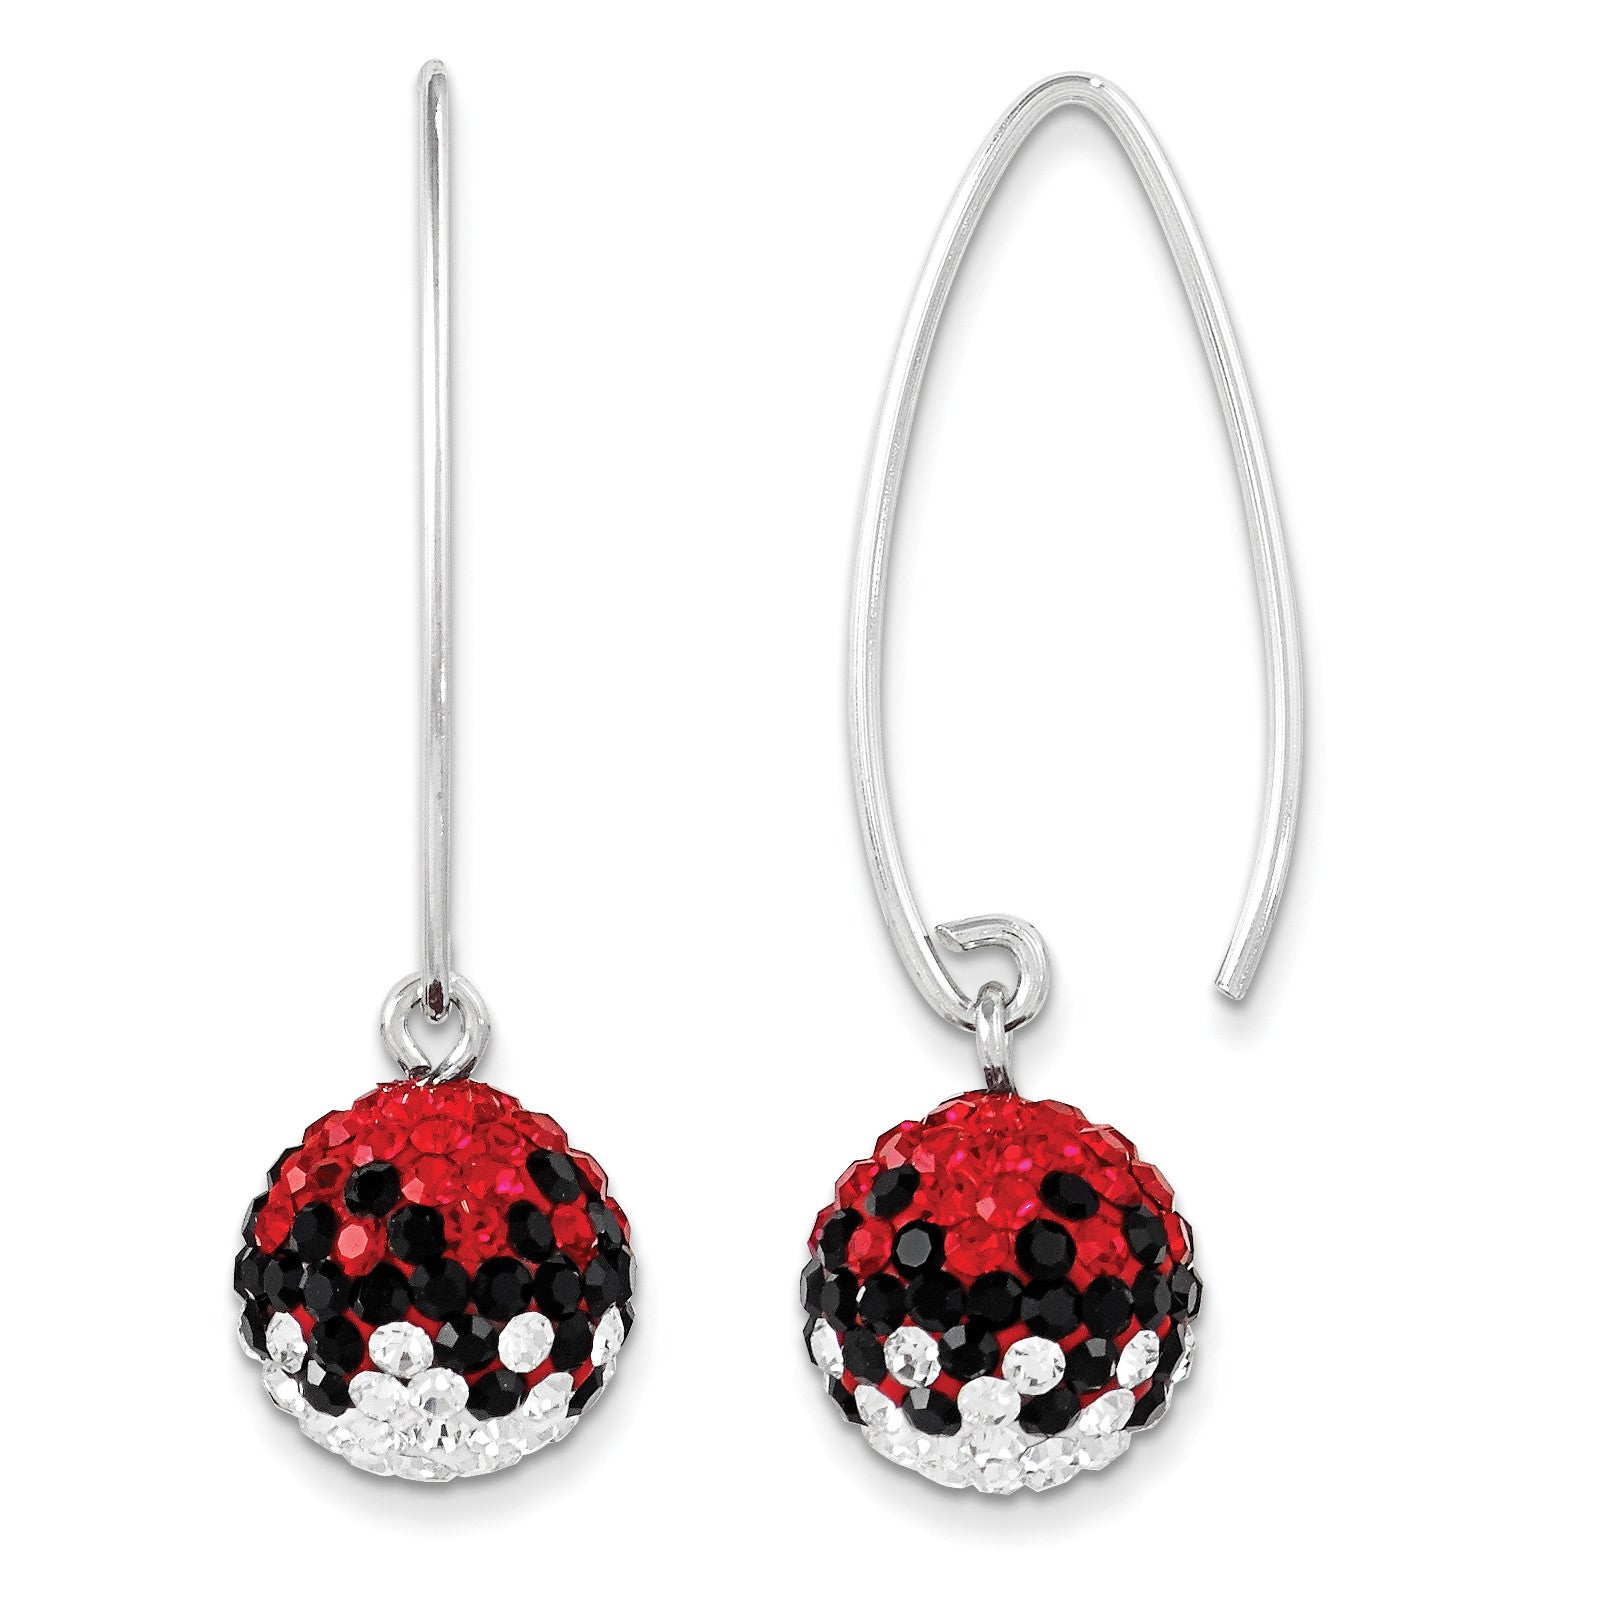 Sterling Silver Swarovski Elements U of South Carolina Earrings CE0174-73 - shirin-diamonds